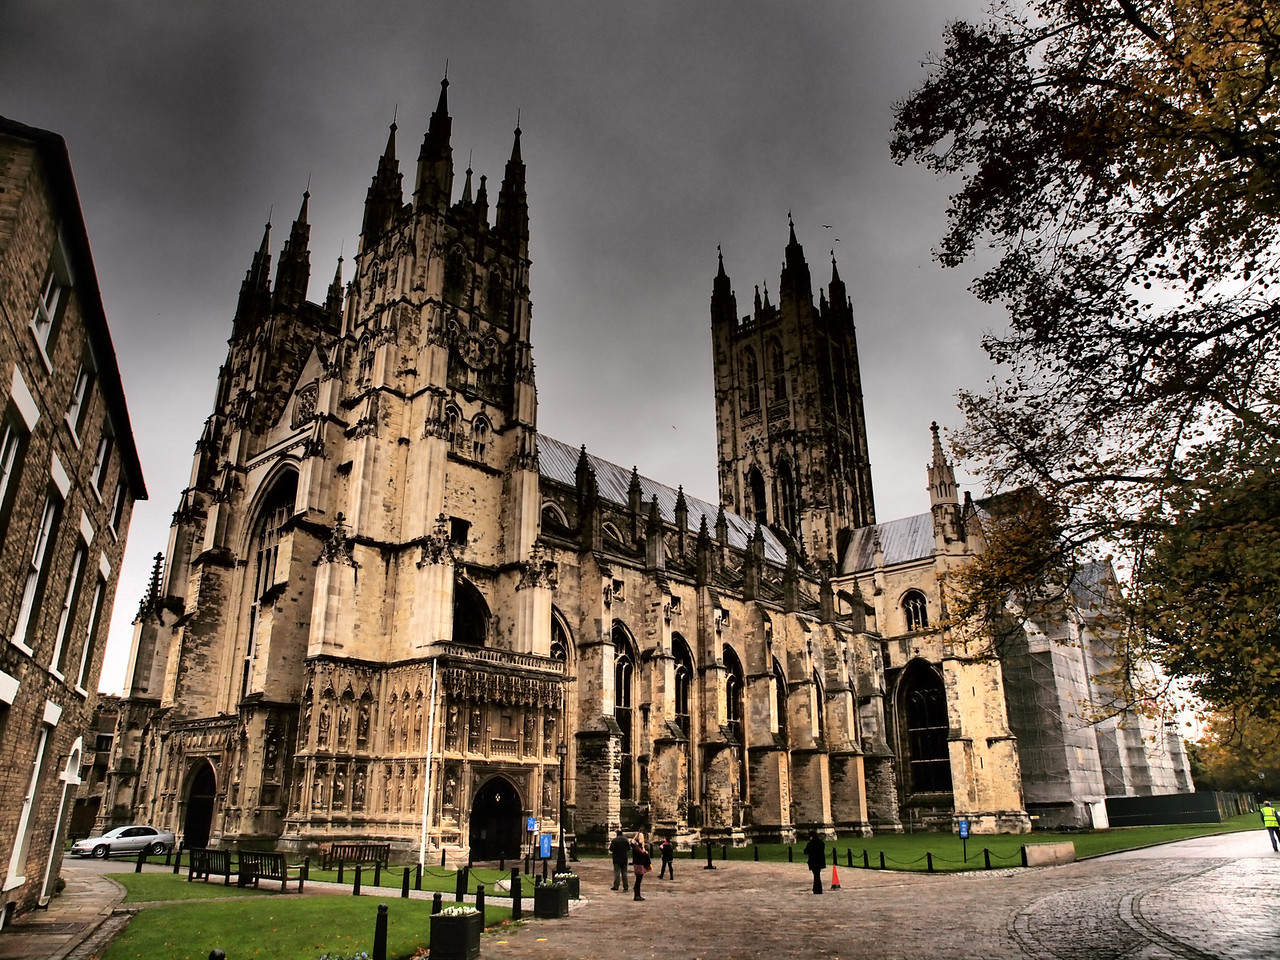 The exterior of Canterbury Cathedral.